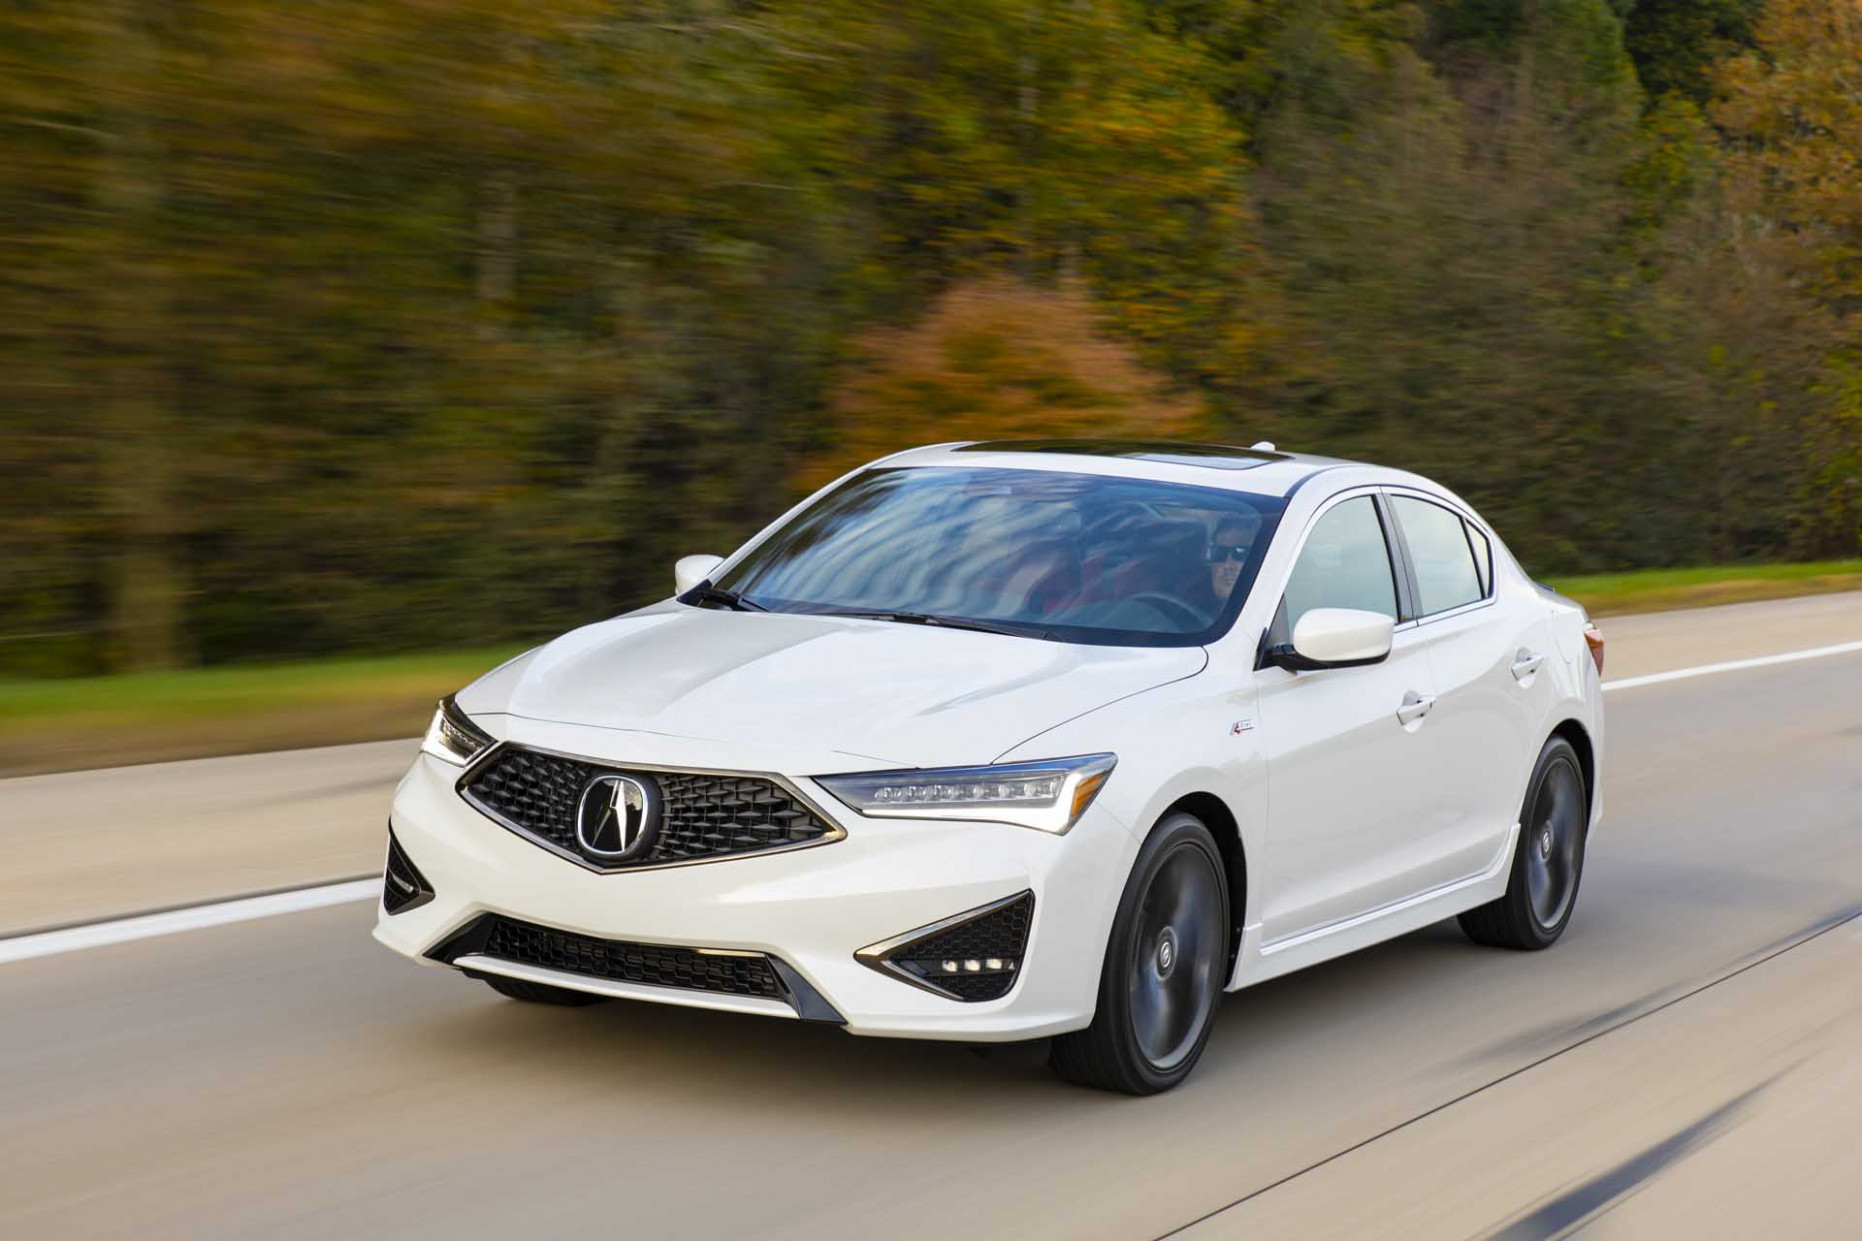 11 Acura ILX Review, Ratings, Specs, Prices, and Photos - The ..